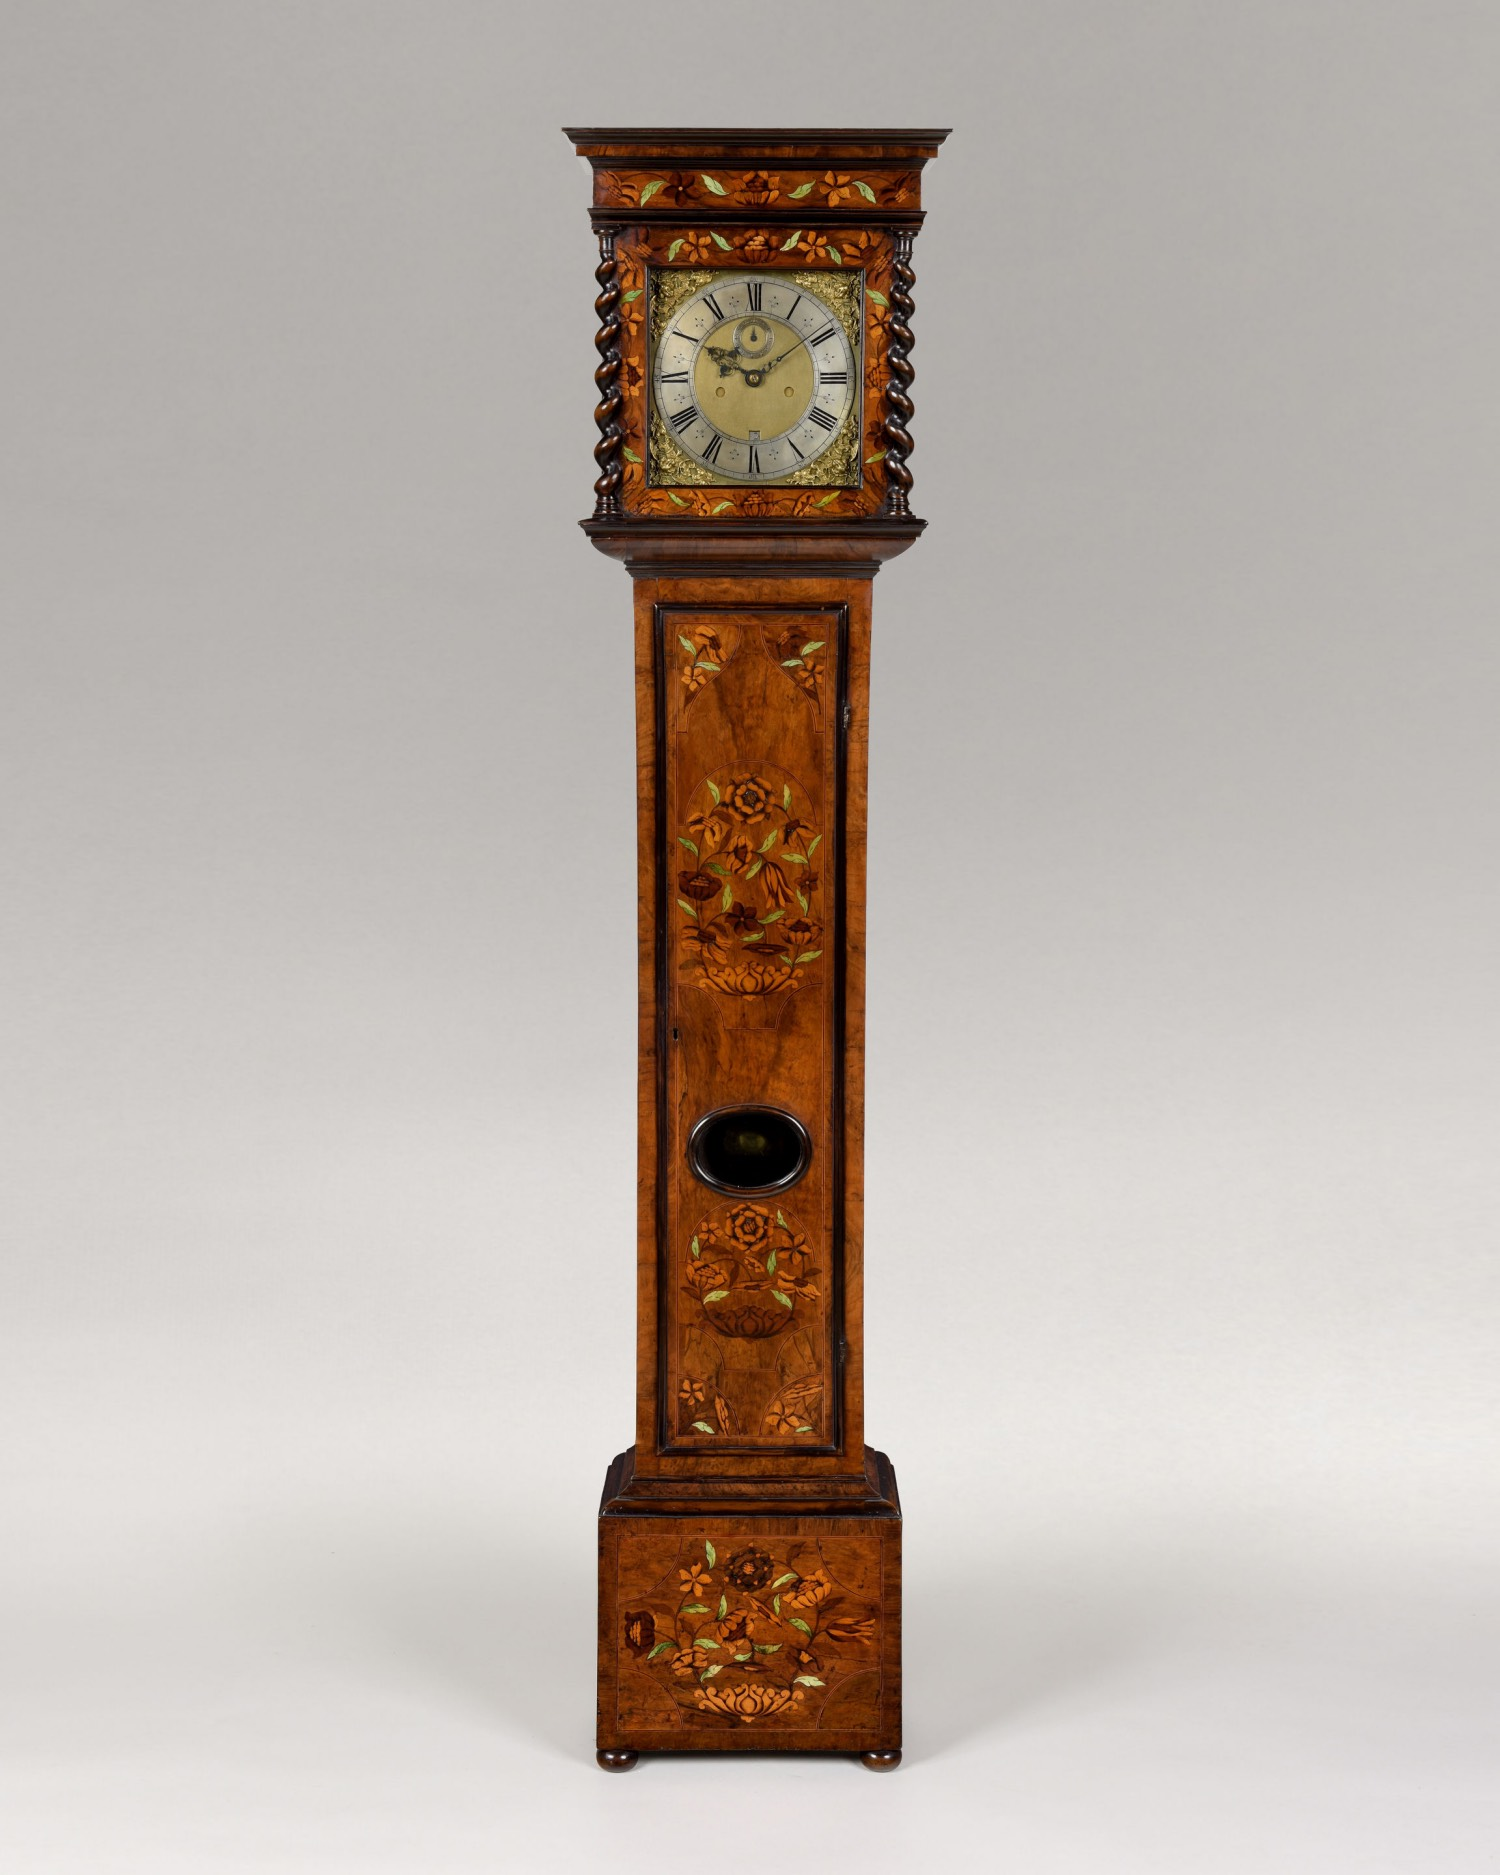 ROBERT SEIGNIOR. A VERY RARE CHARLES II PERIOD FLORAL MARQUETRY, WALNUT AND GREEN BONE INLAID 8-DAY LONGCASE CLOCK OF BEAUTIFUL PROPORTIONS AND COLOUR.